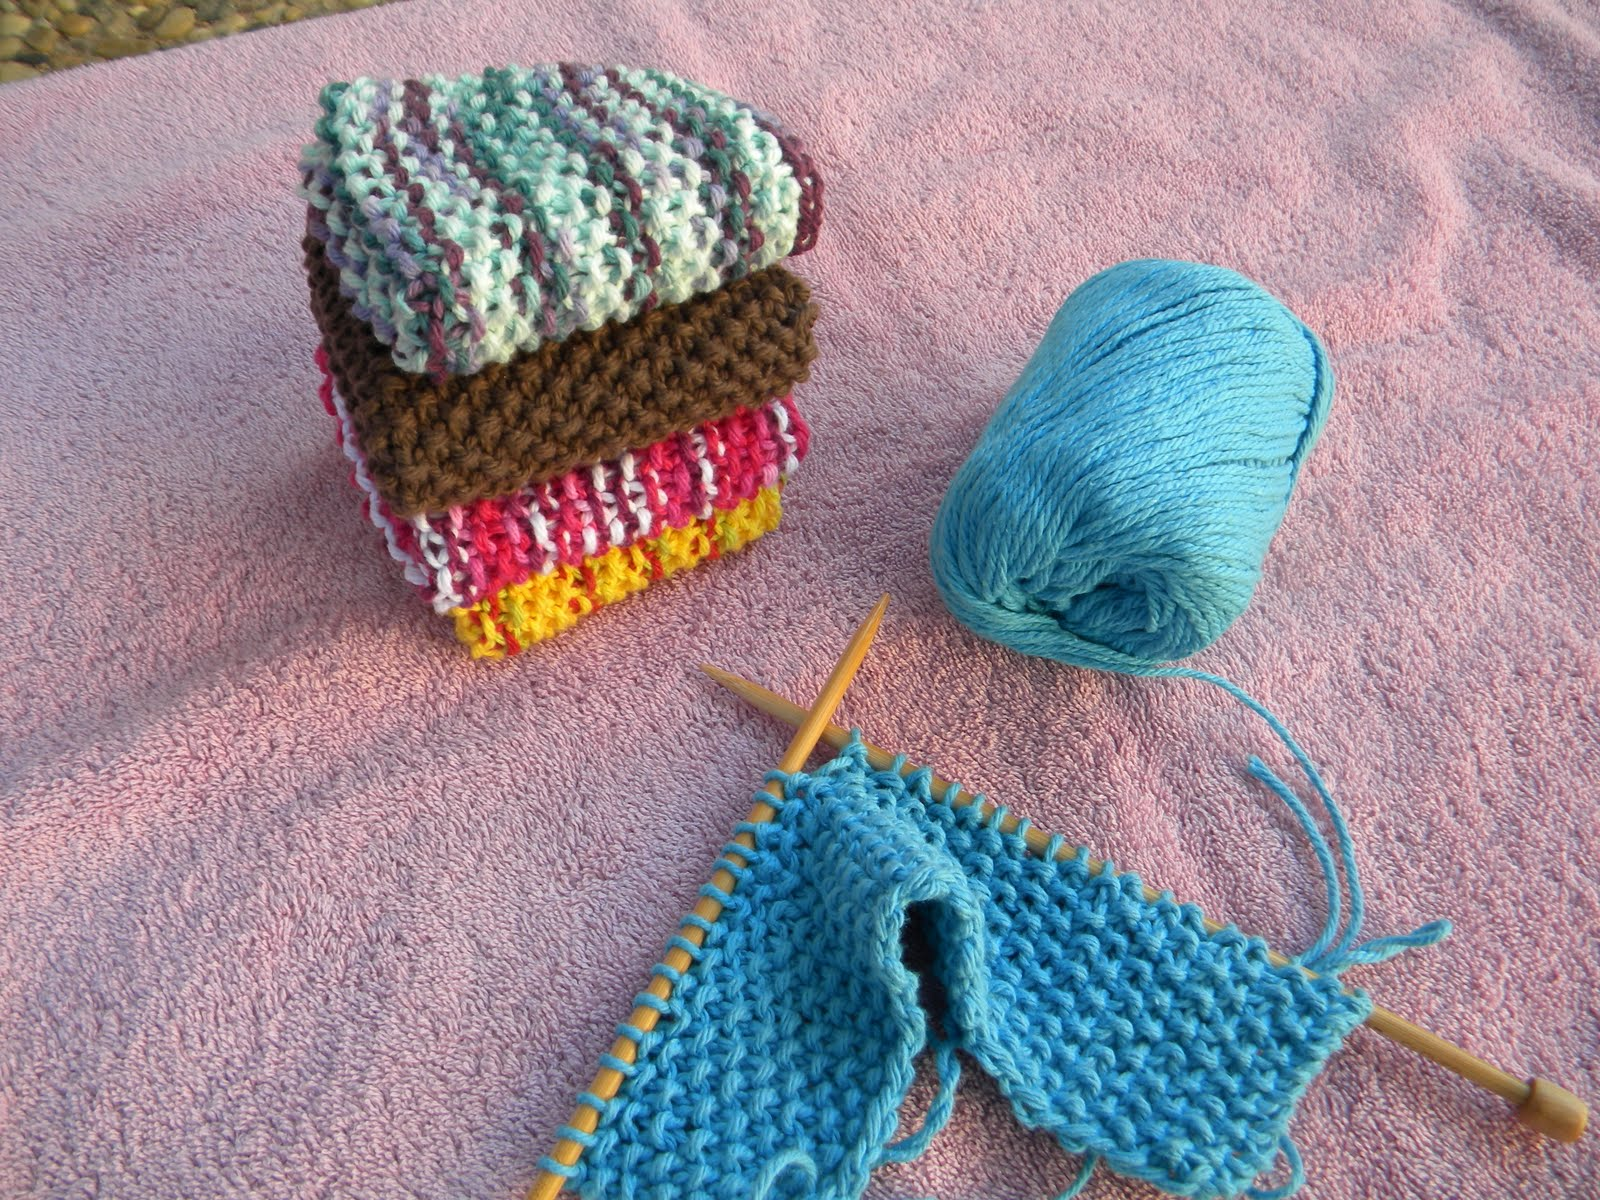 Stitch 2 Buttercups: Knit Dishcloths: Seed Stitch